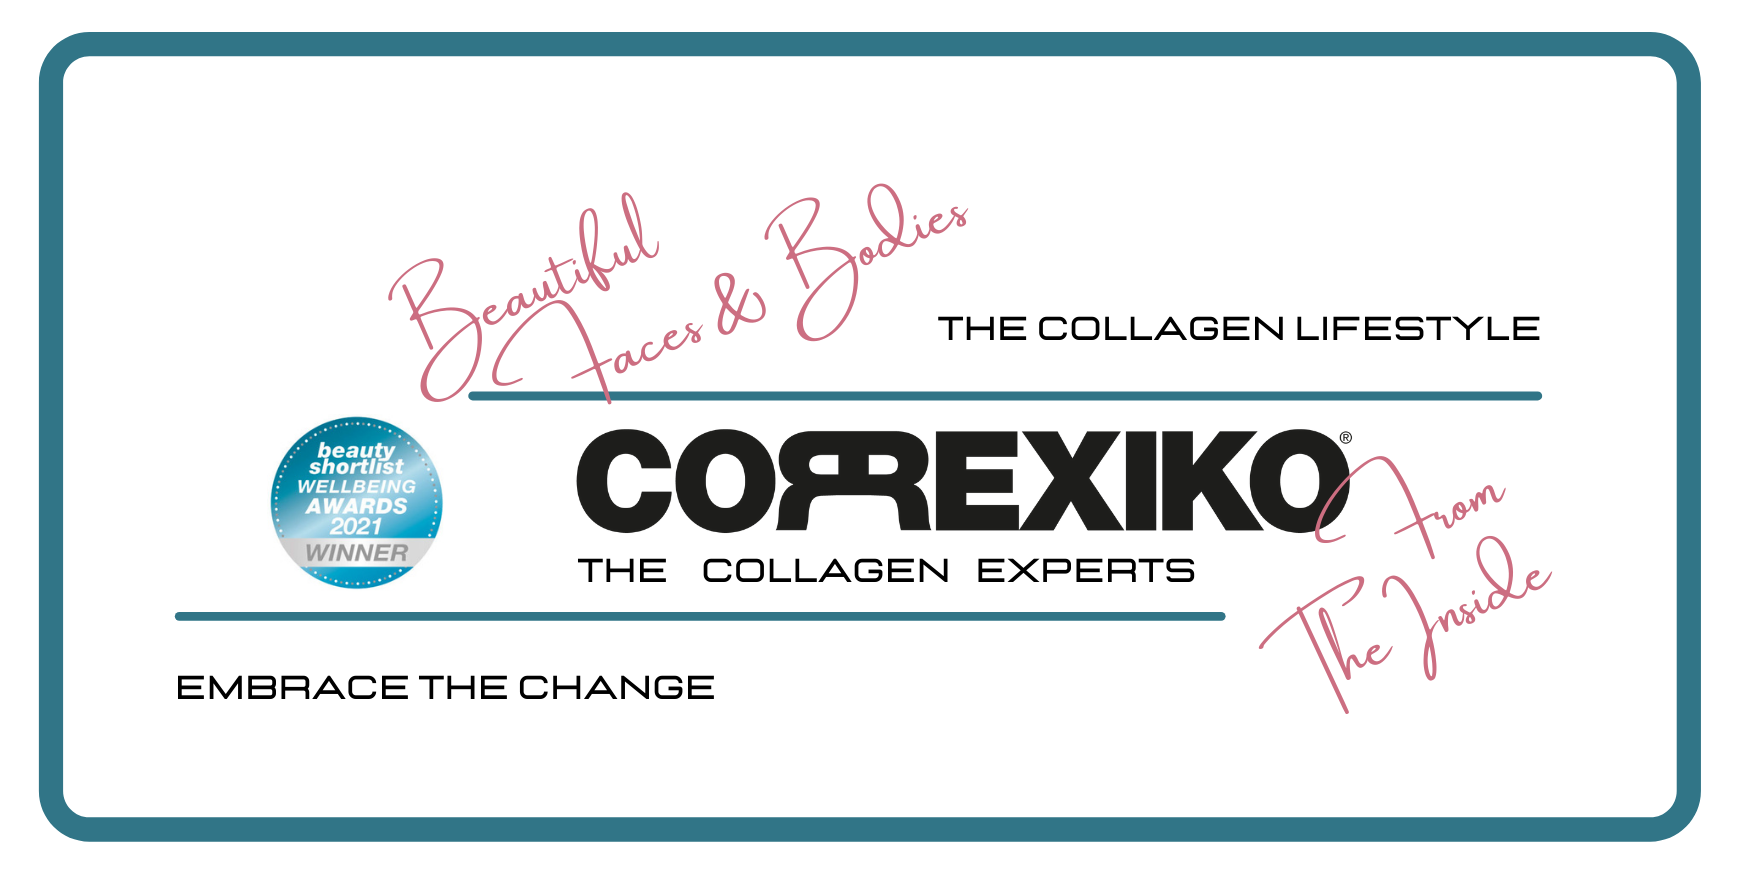 The Collagen Lifestyle: Beautiful Faces & Bodies (From The Inside) | Correxiko - The Collagen Experts